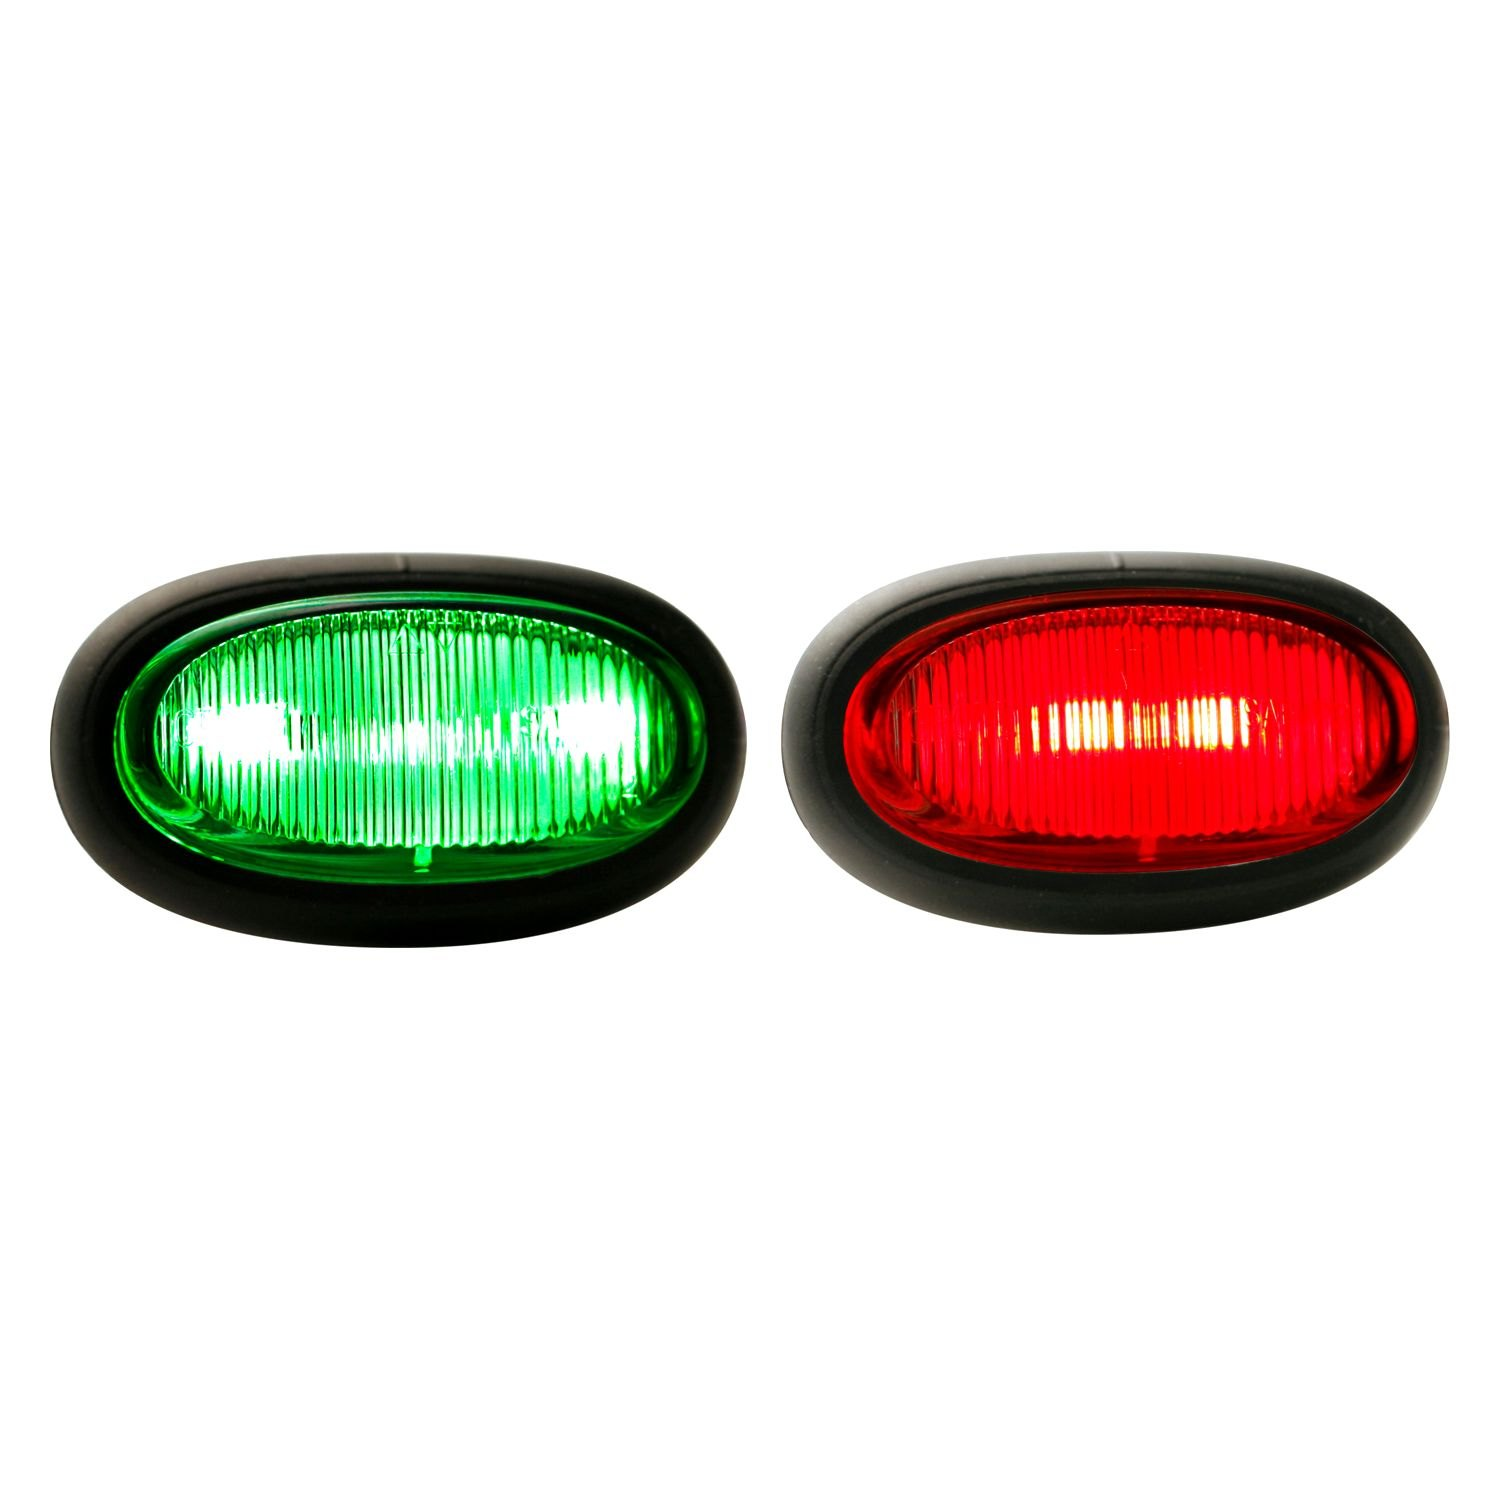 Grote 49460 3 Micronova Led Indicator Lights Make Your Own Beautiful  HD Wallpapers, Images Over 1000+ [ralydesign.ml]